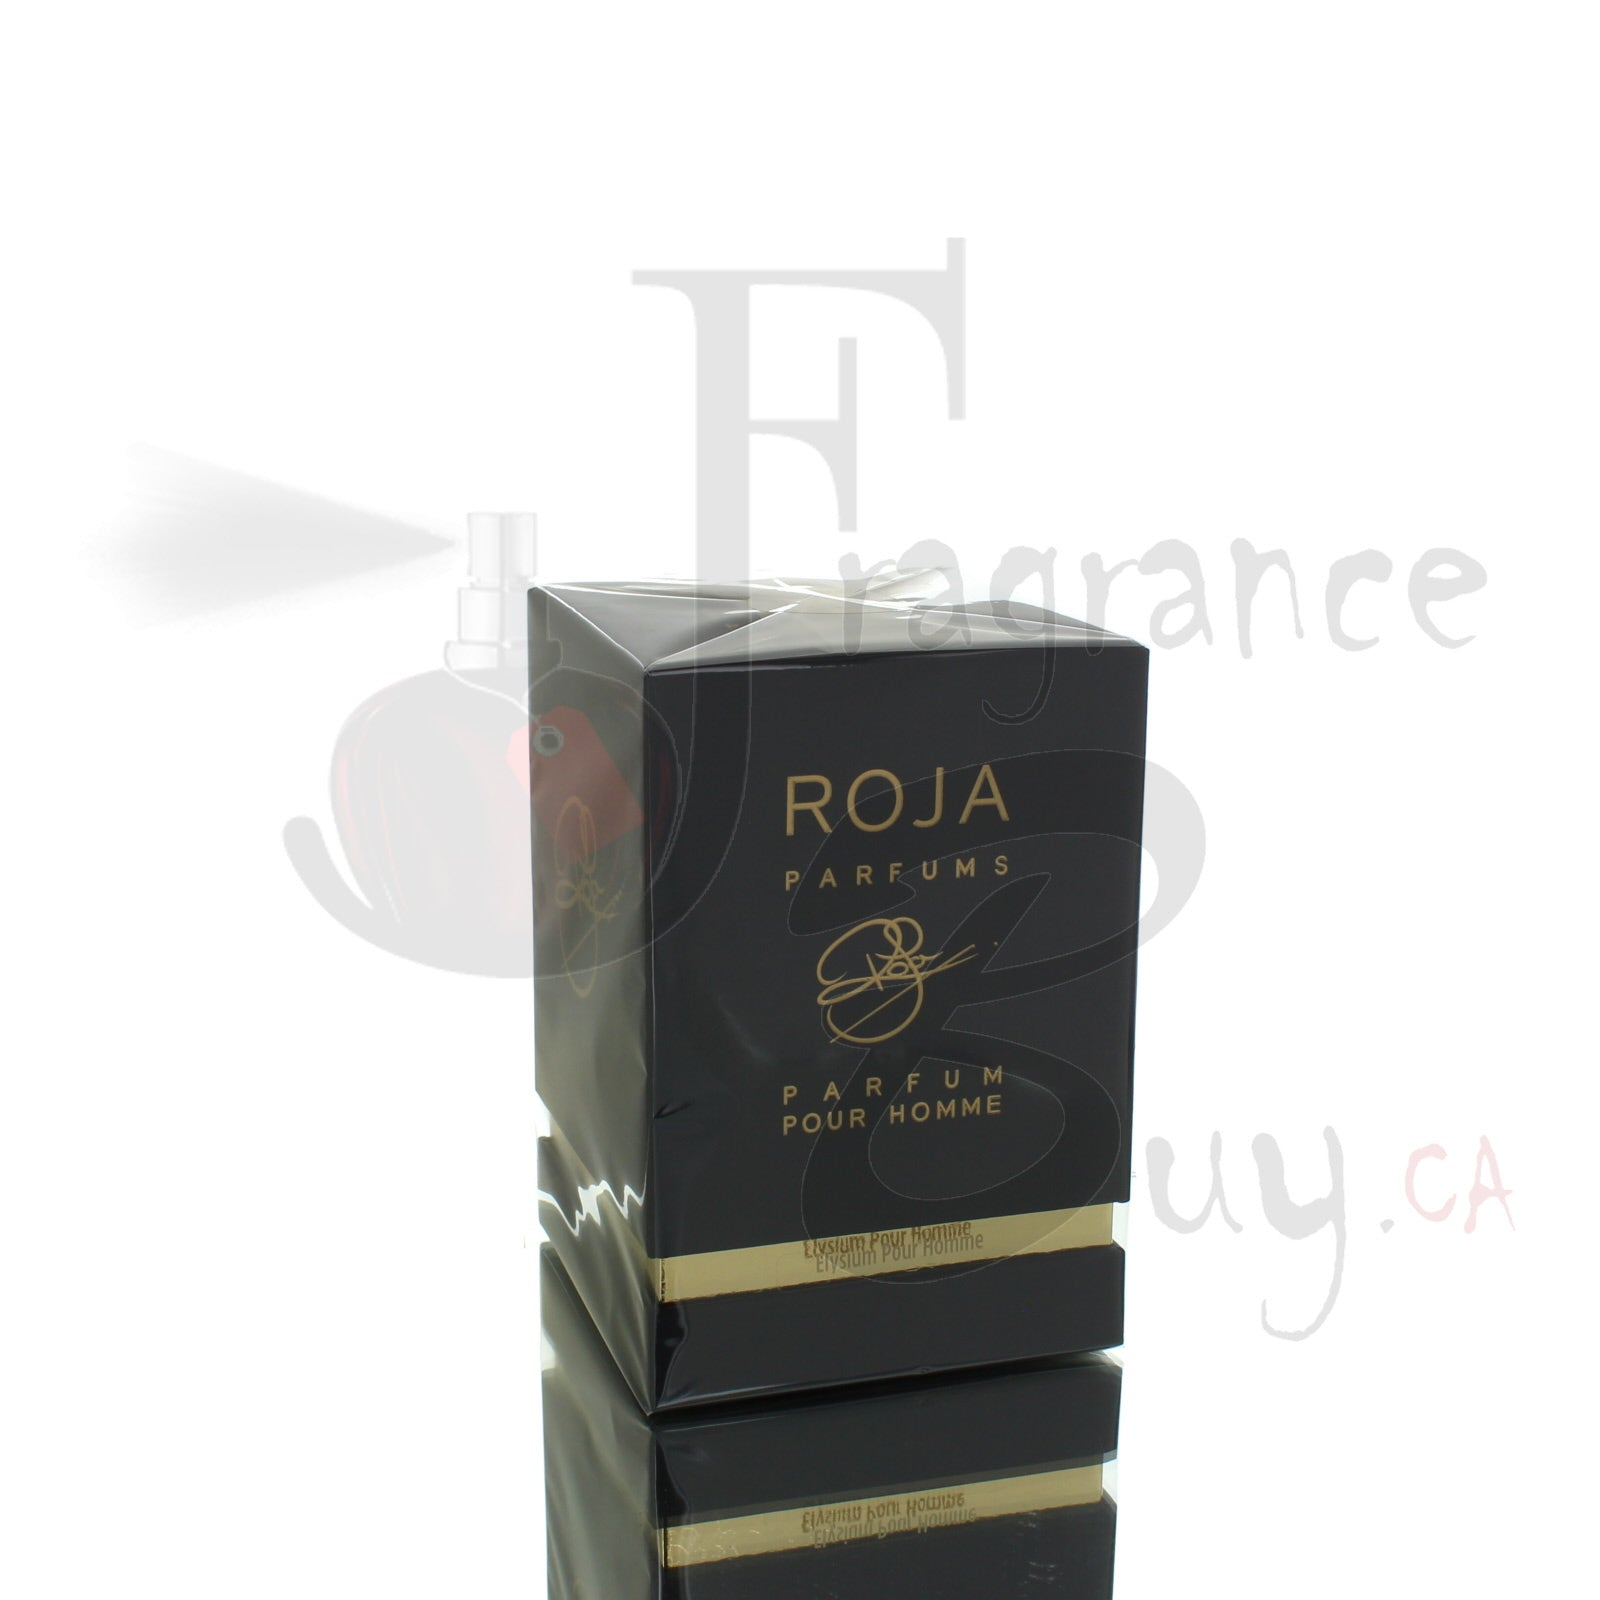 Roja Elysium Parfum For Man